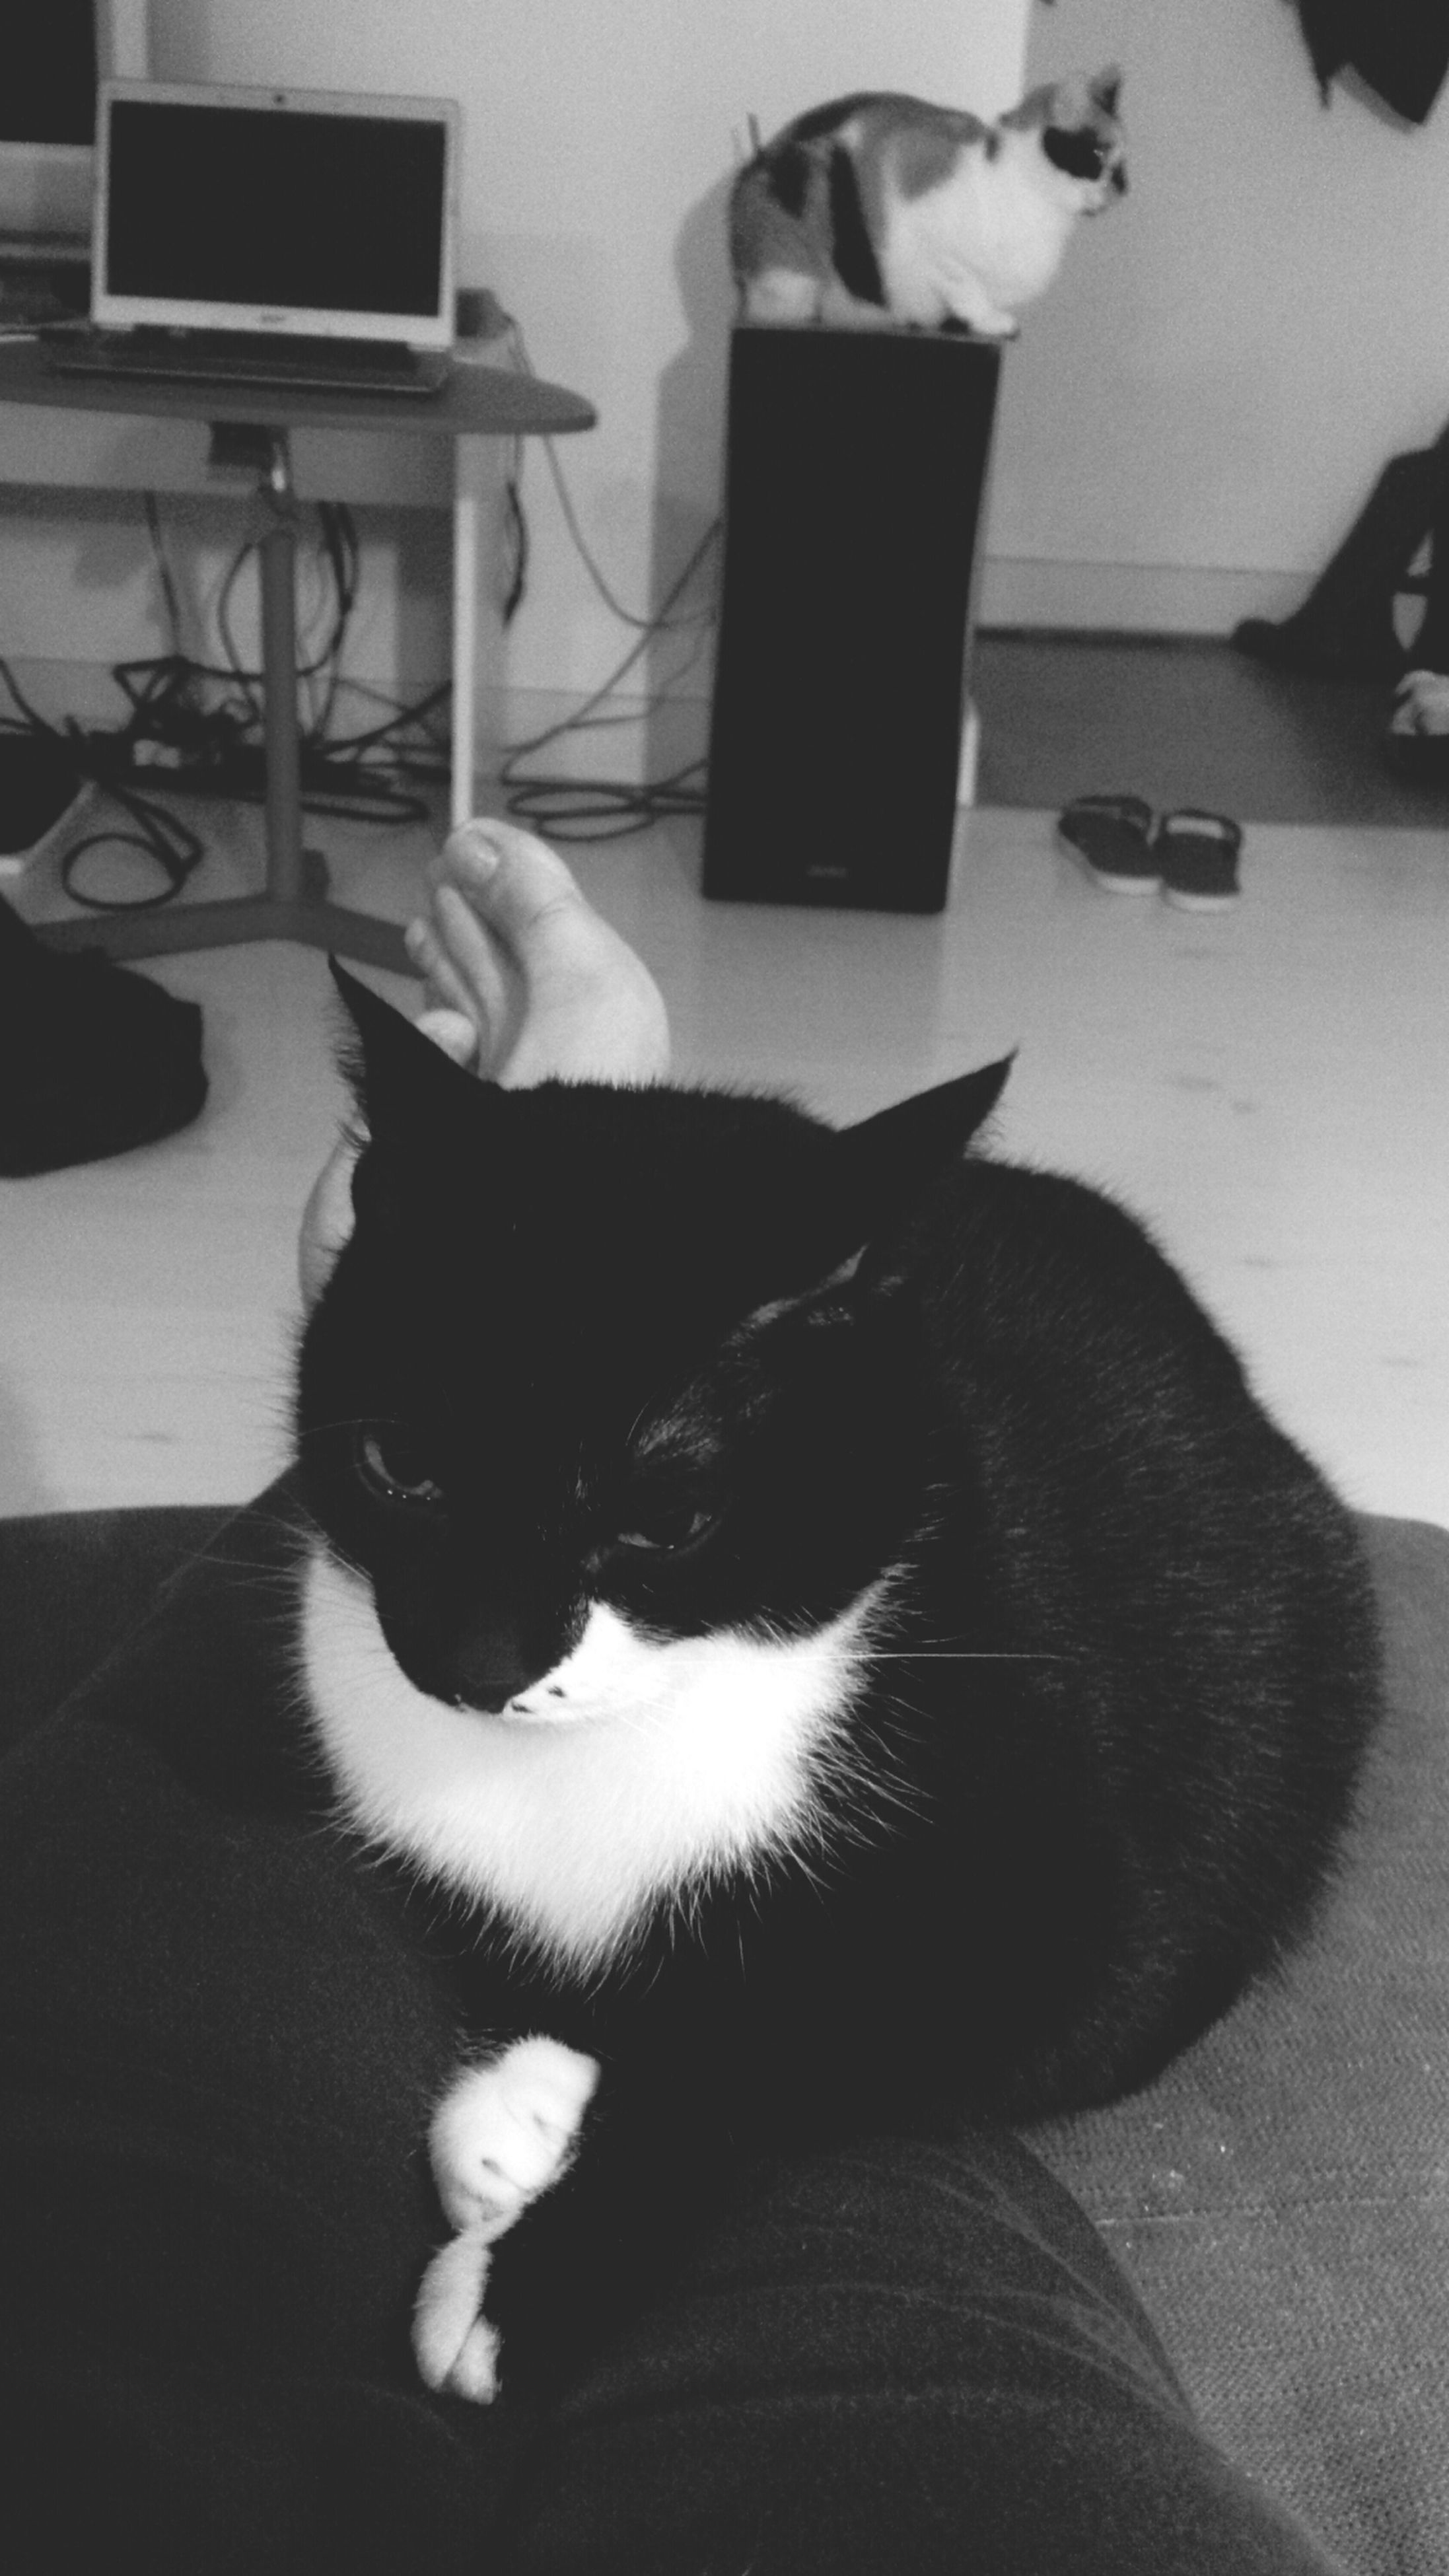 pets, indoors, domestic animals, domestic cat, cat, one animal, mammal, animal themes, feline, home interior, relaxation, whisker, bed, sofa, home, sitting, lying down, resting, black color, portrait